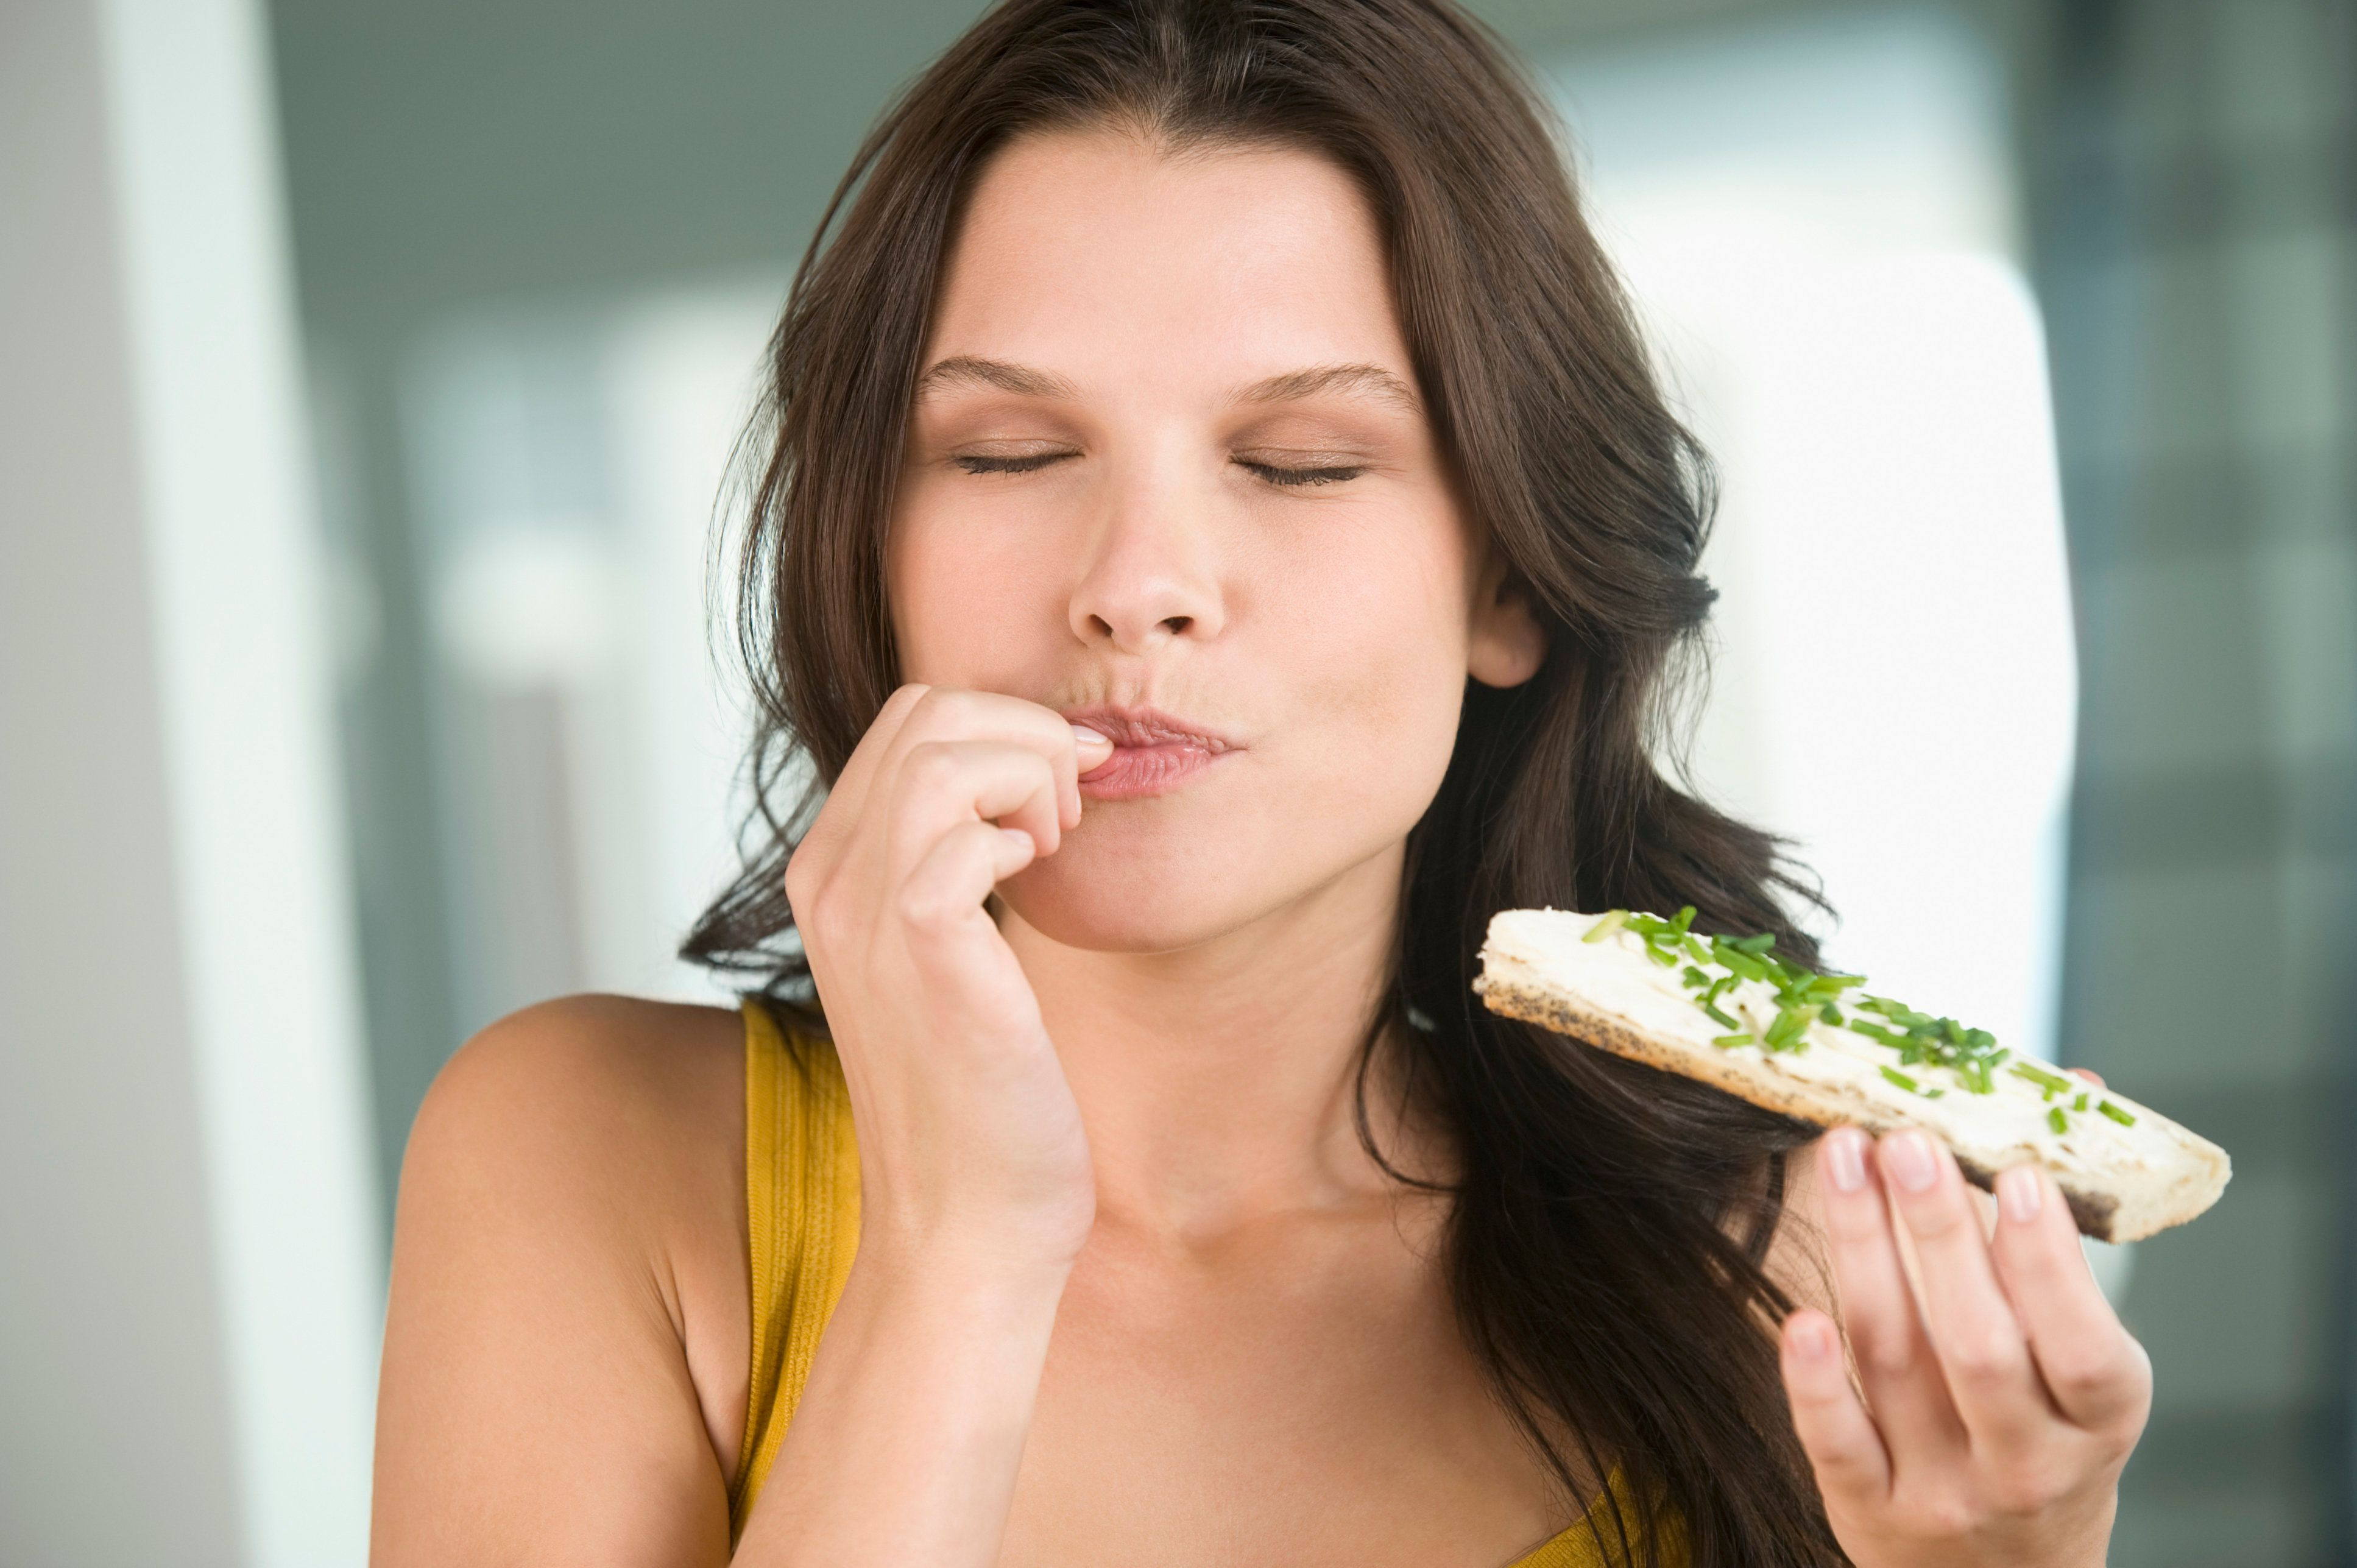 Hearing your own food while chewing canreduce how much you eat, scientists say.